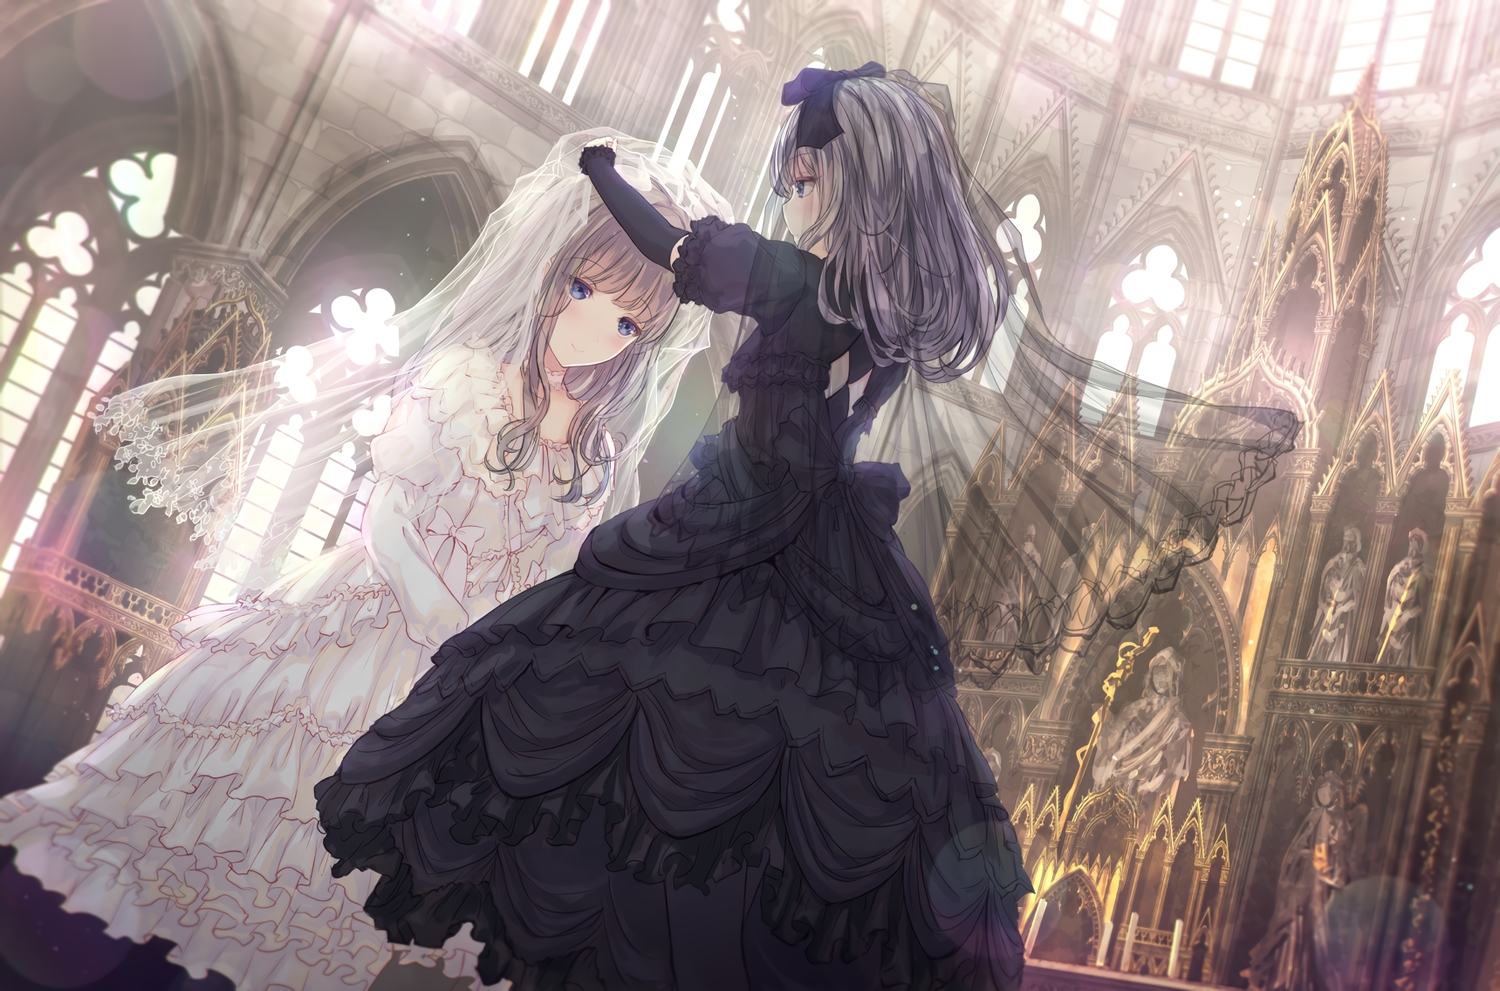 2girls apple228 blue_eyes blush brown_hair dress goth-loli gray_hair headdress lolita_fashion long_hair original shoujo_ai wedding wedding_attire